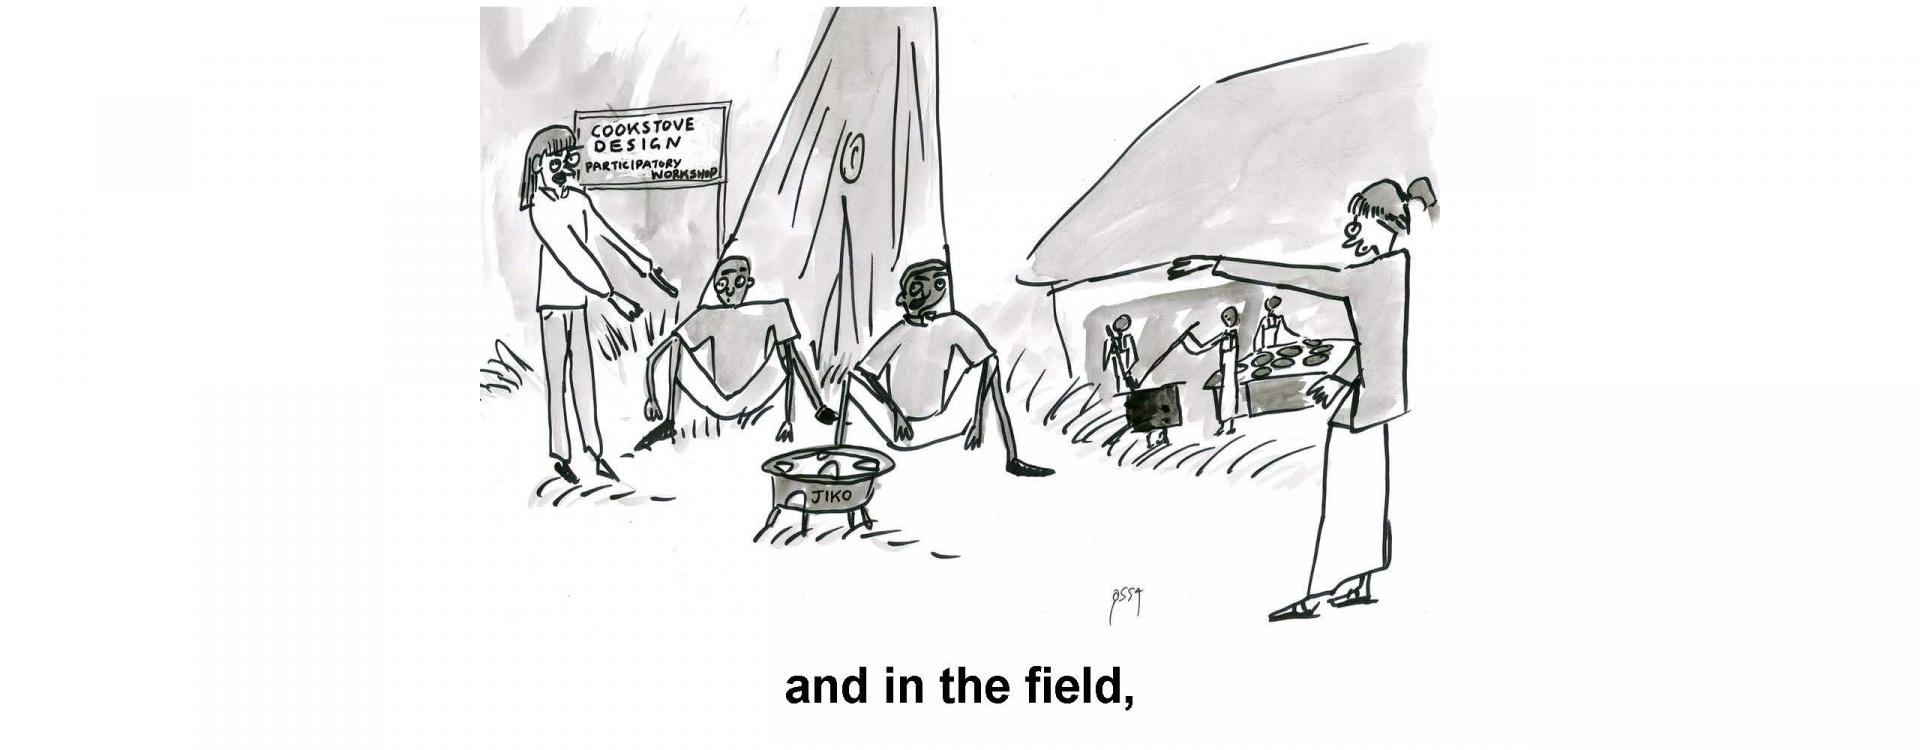 and in the field,